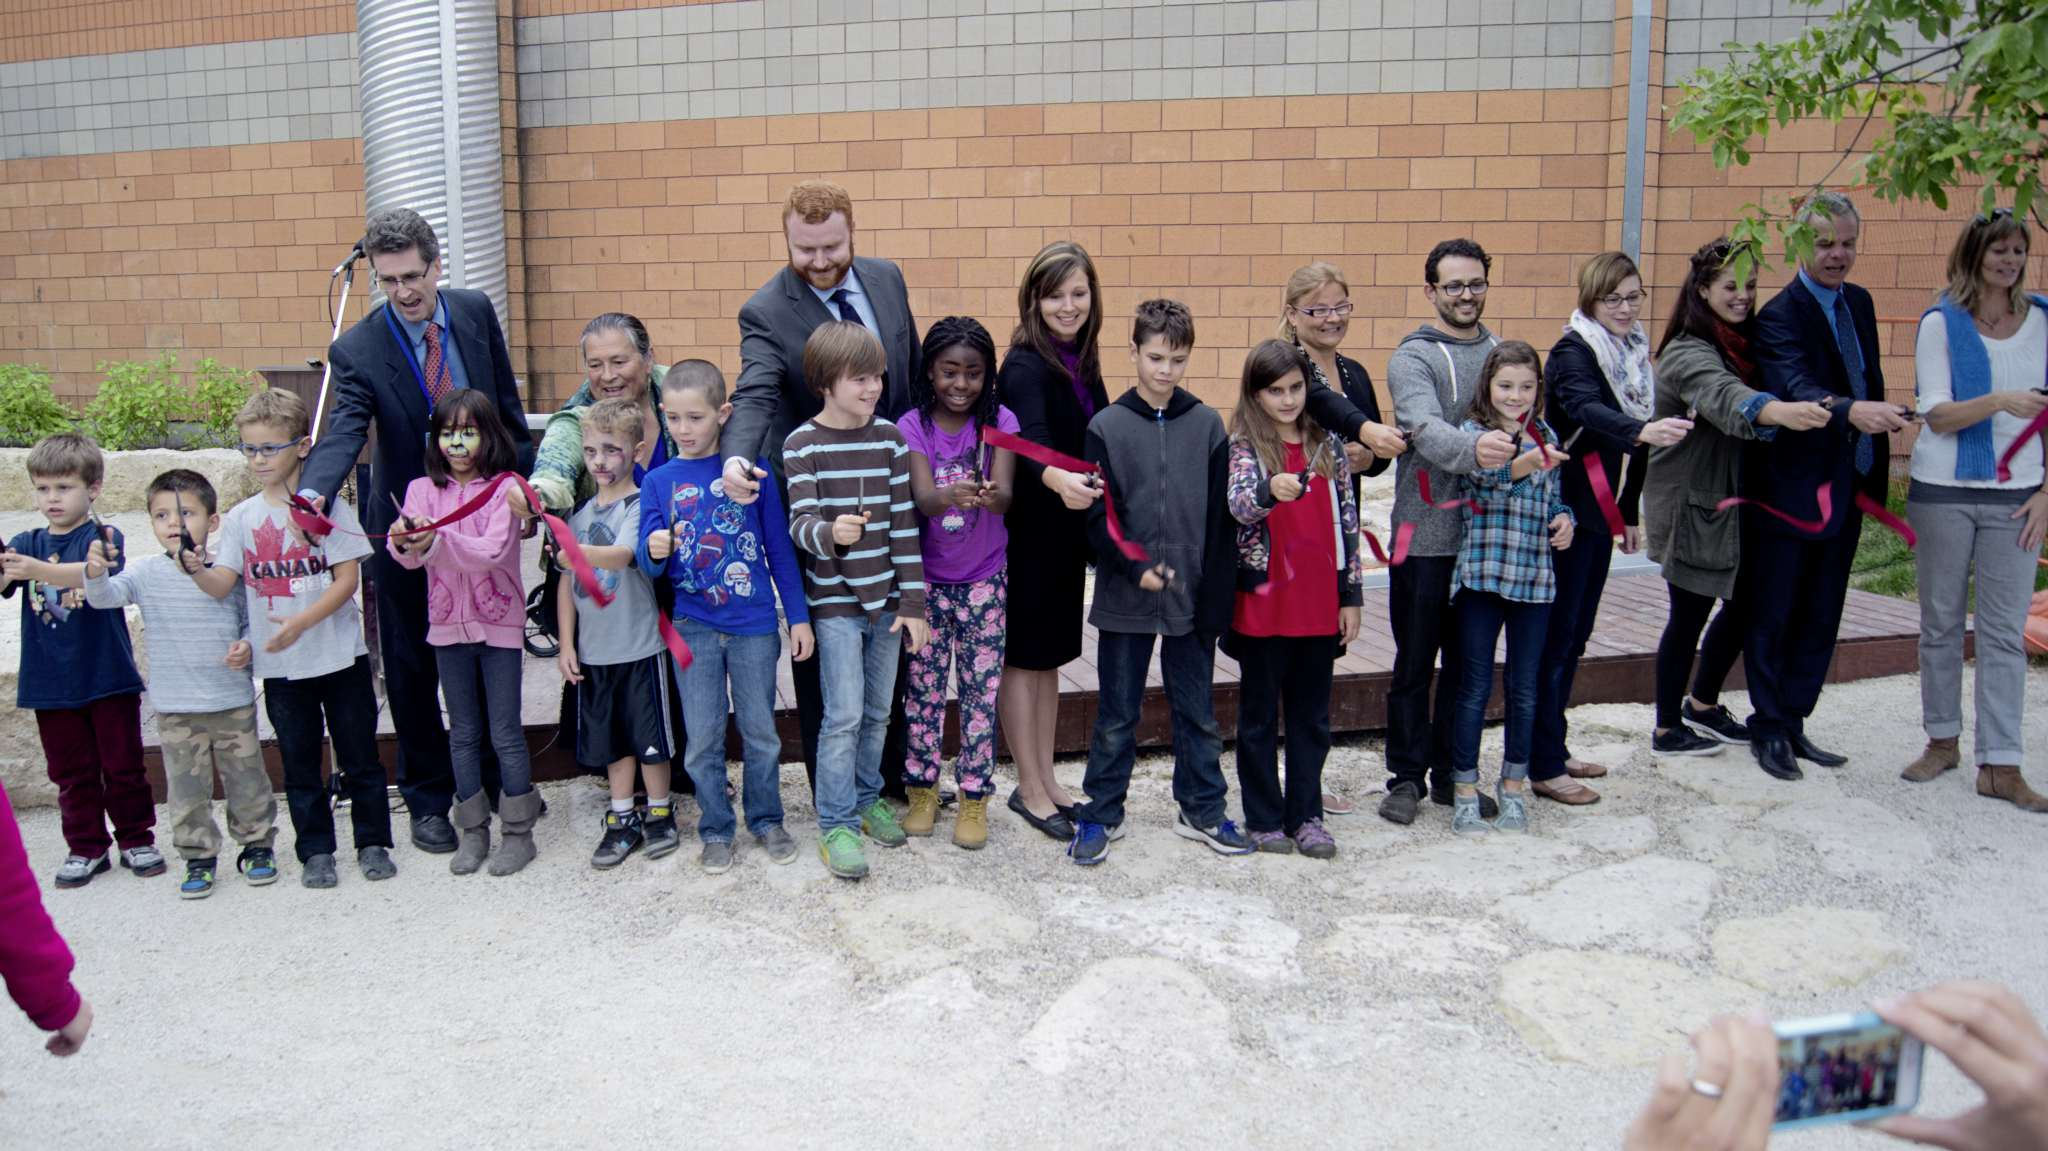 Students, staff, parents, education minister James Allum, Winnipeg city councillor Jenny Gerbasi's executive assistant, Hilary Allum, and Winnipeg School Division Board Trustee Chris Broughton cut the ribbon for the new Riverview outdoor learning space. DANIELLE DA SILVA - SOU